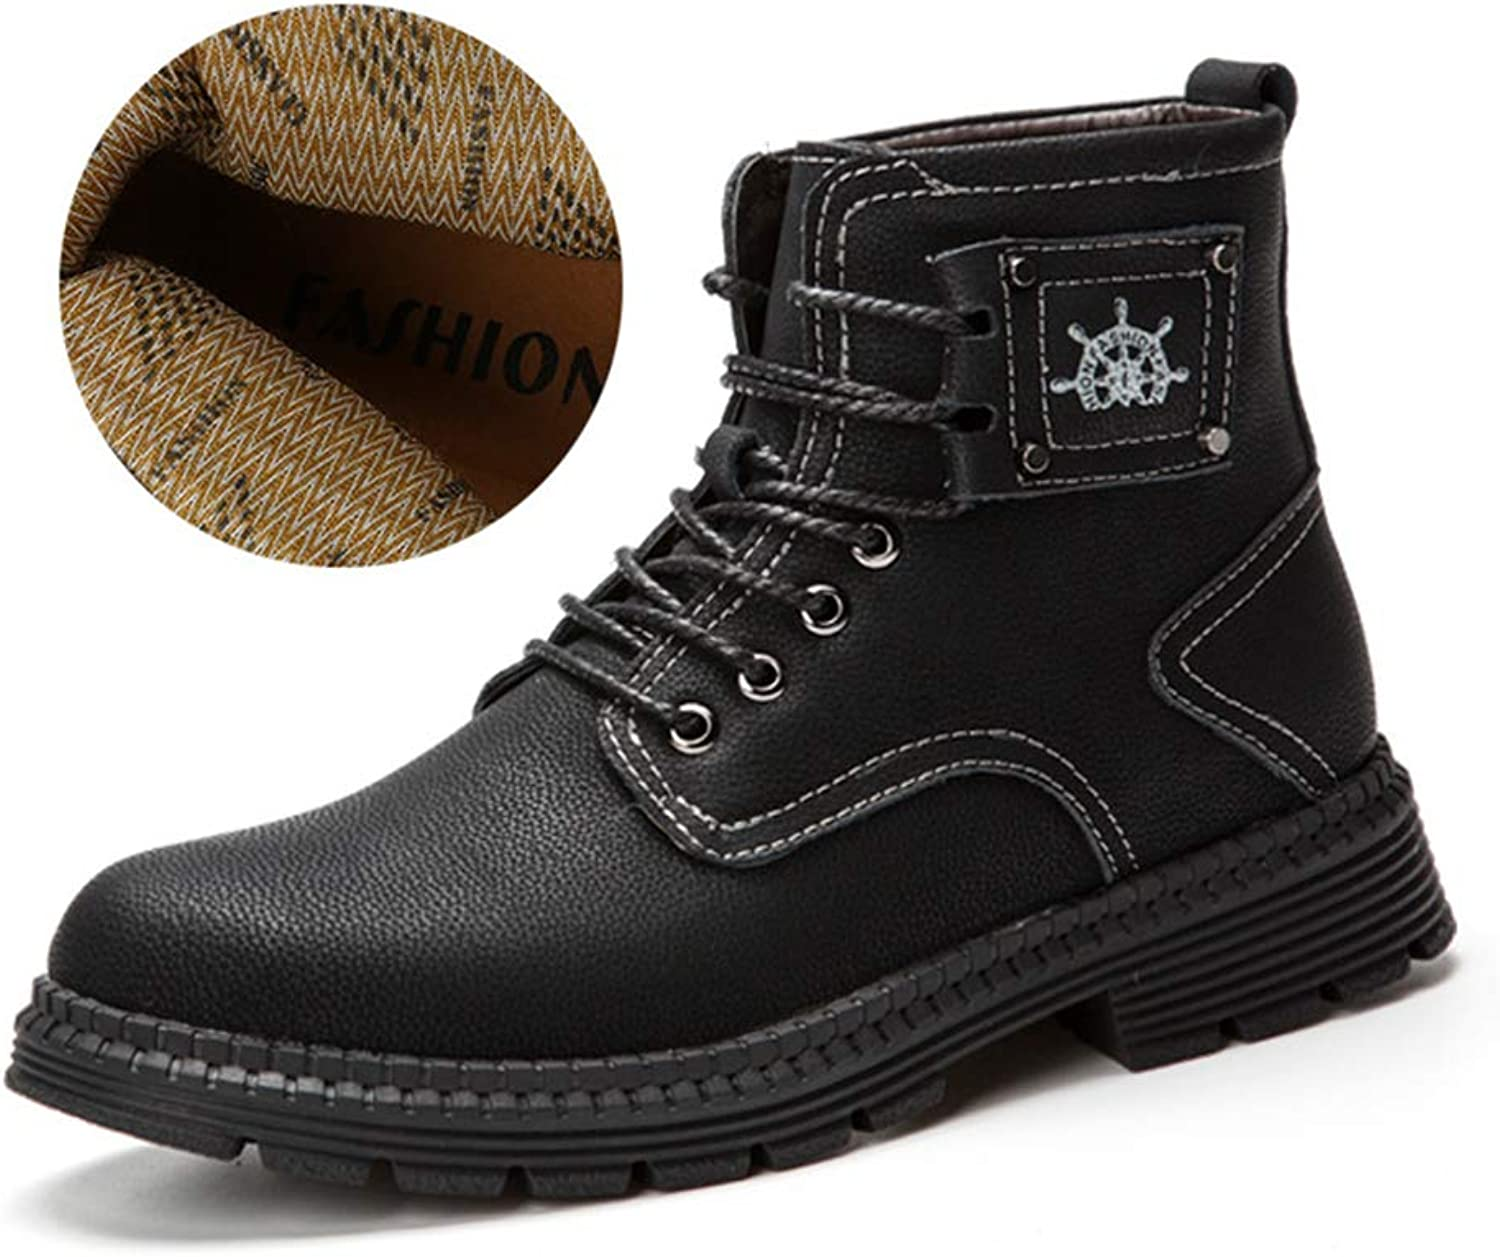 Phil Betty Mens Martin Boots Plus Velvet Warm Non-Slip Lace Up Casual Comfortable Booties